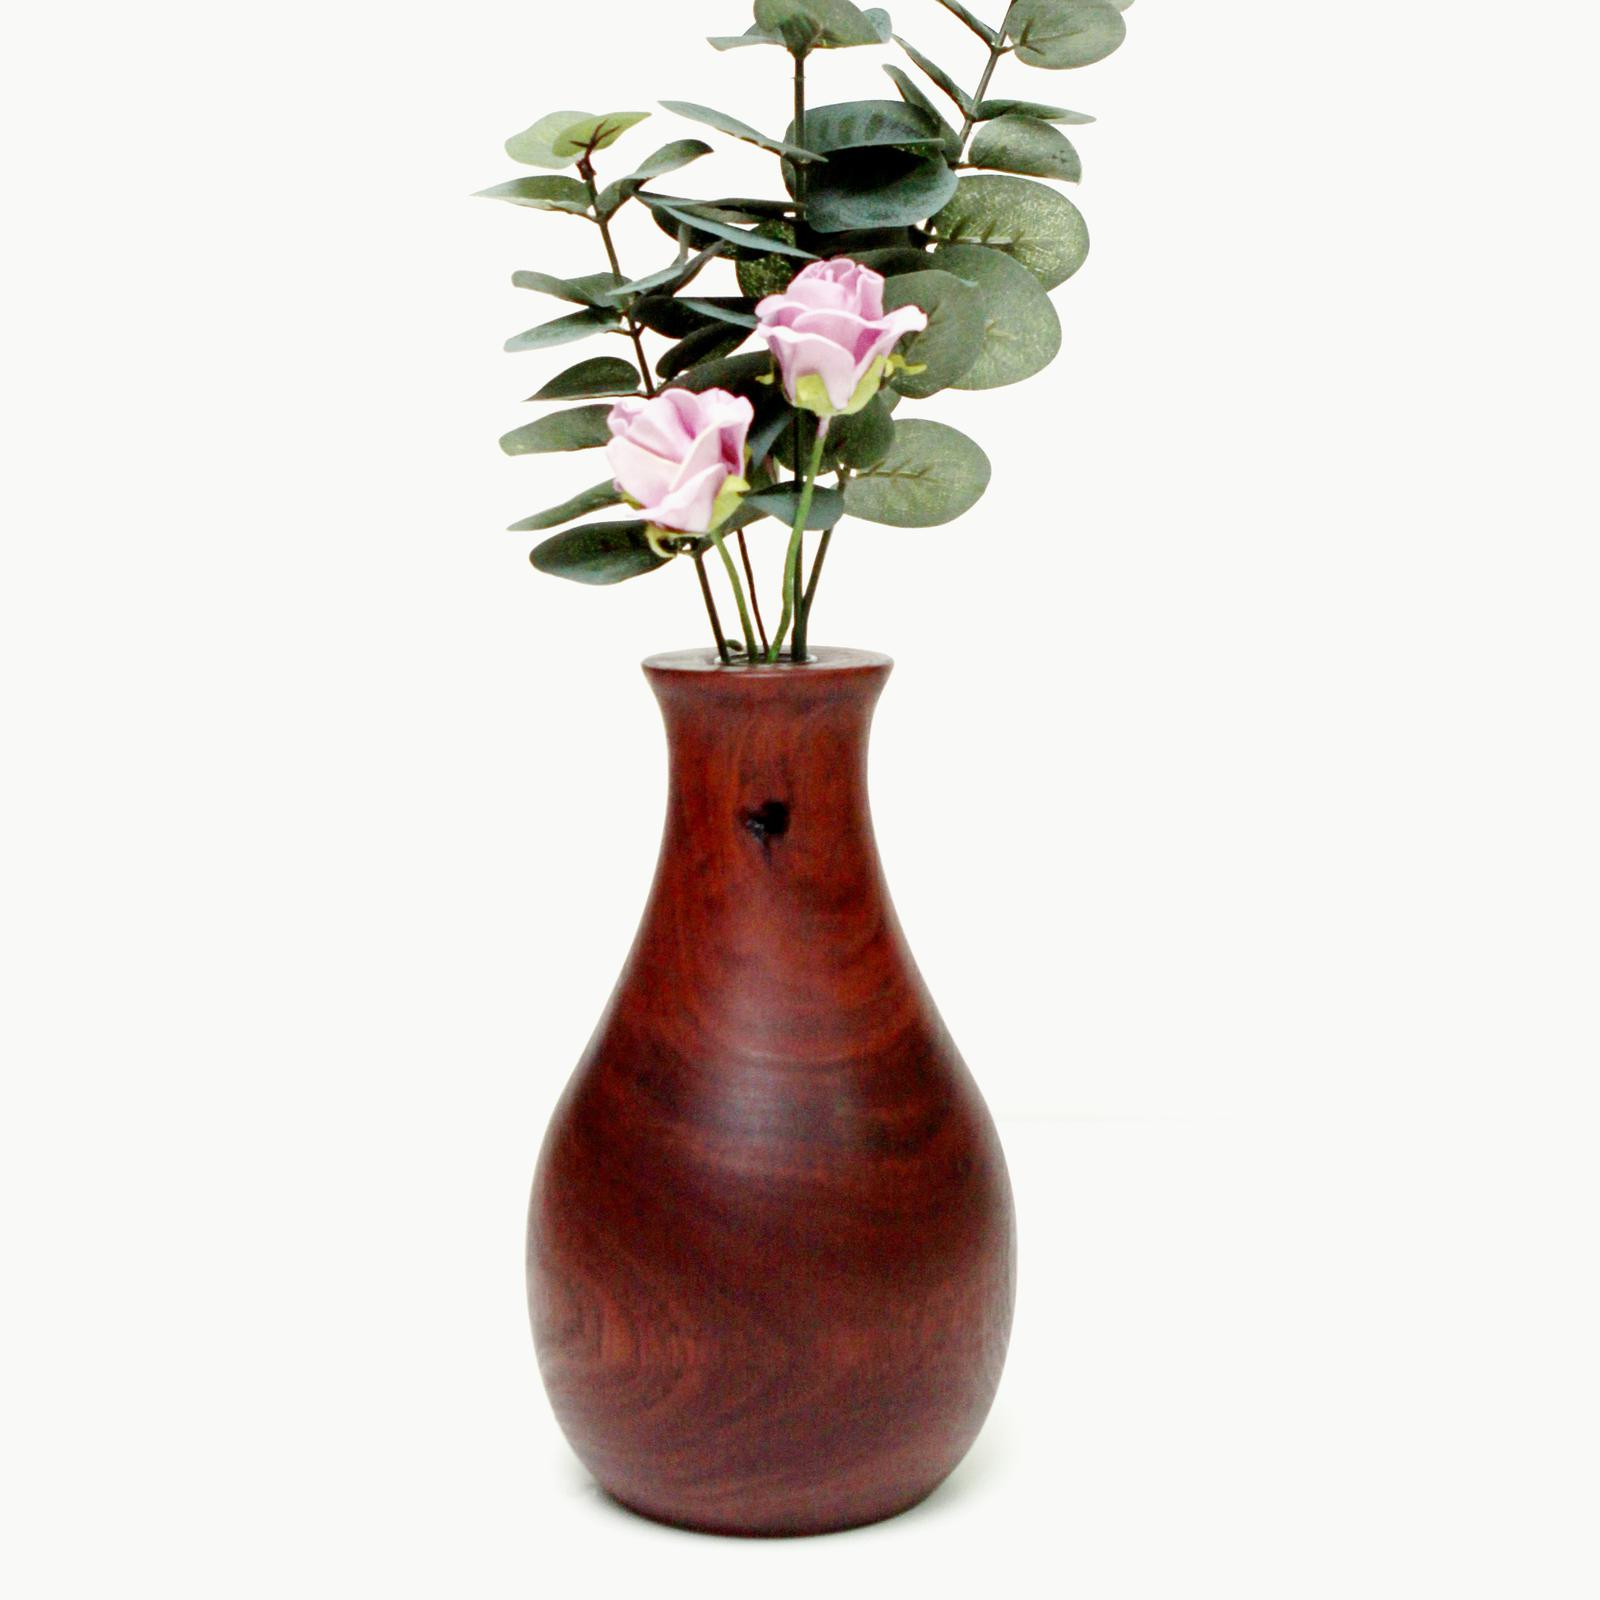 Turned Jarrah Vase